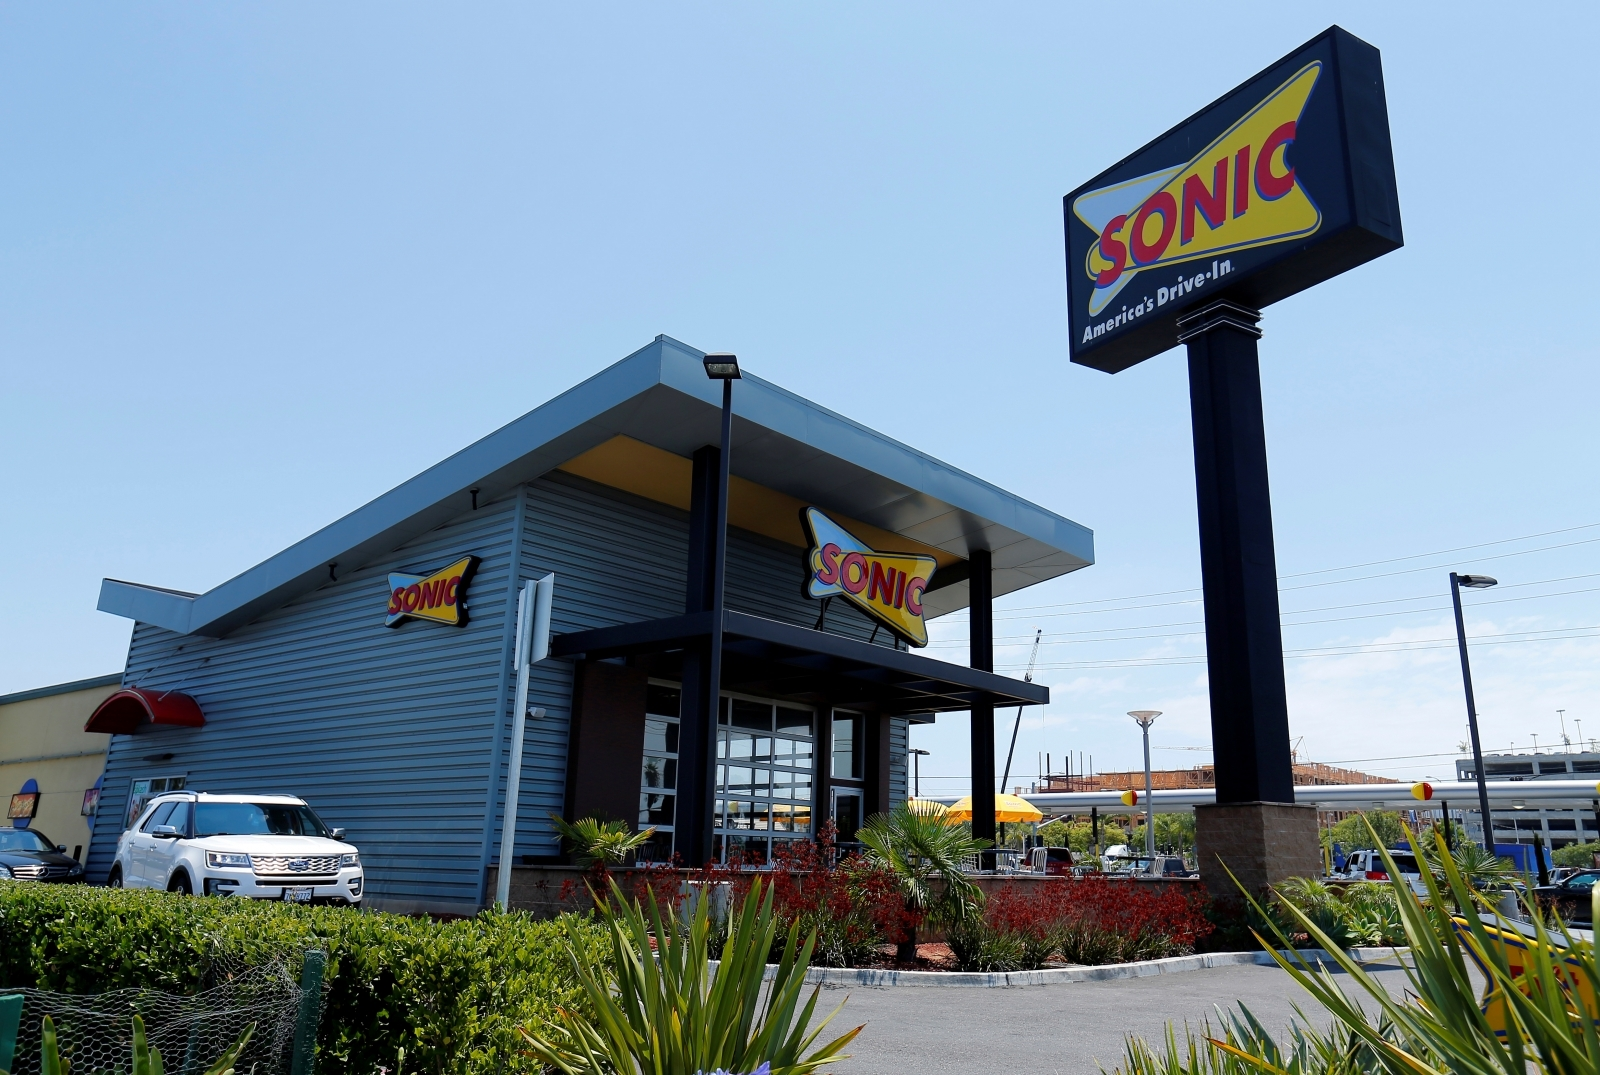 Sonic Discloses That Hackers Breached Customers' Credit Cards